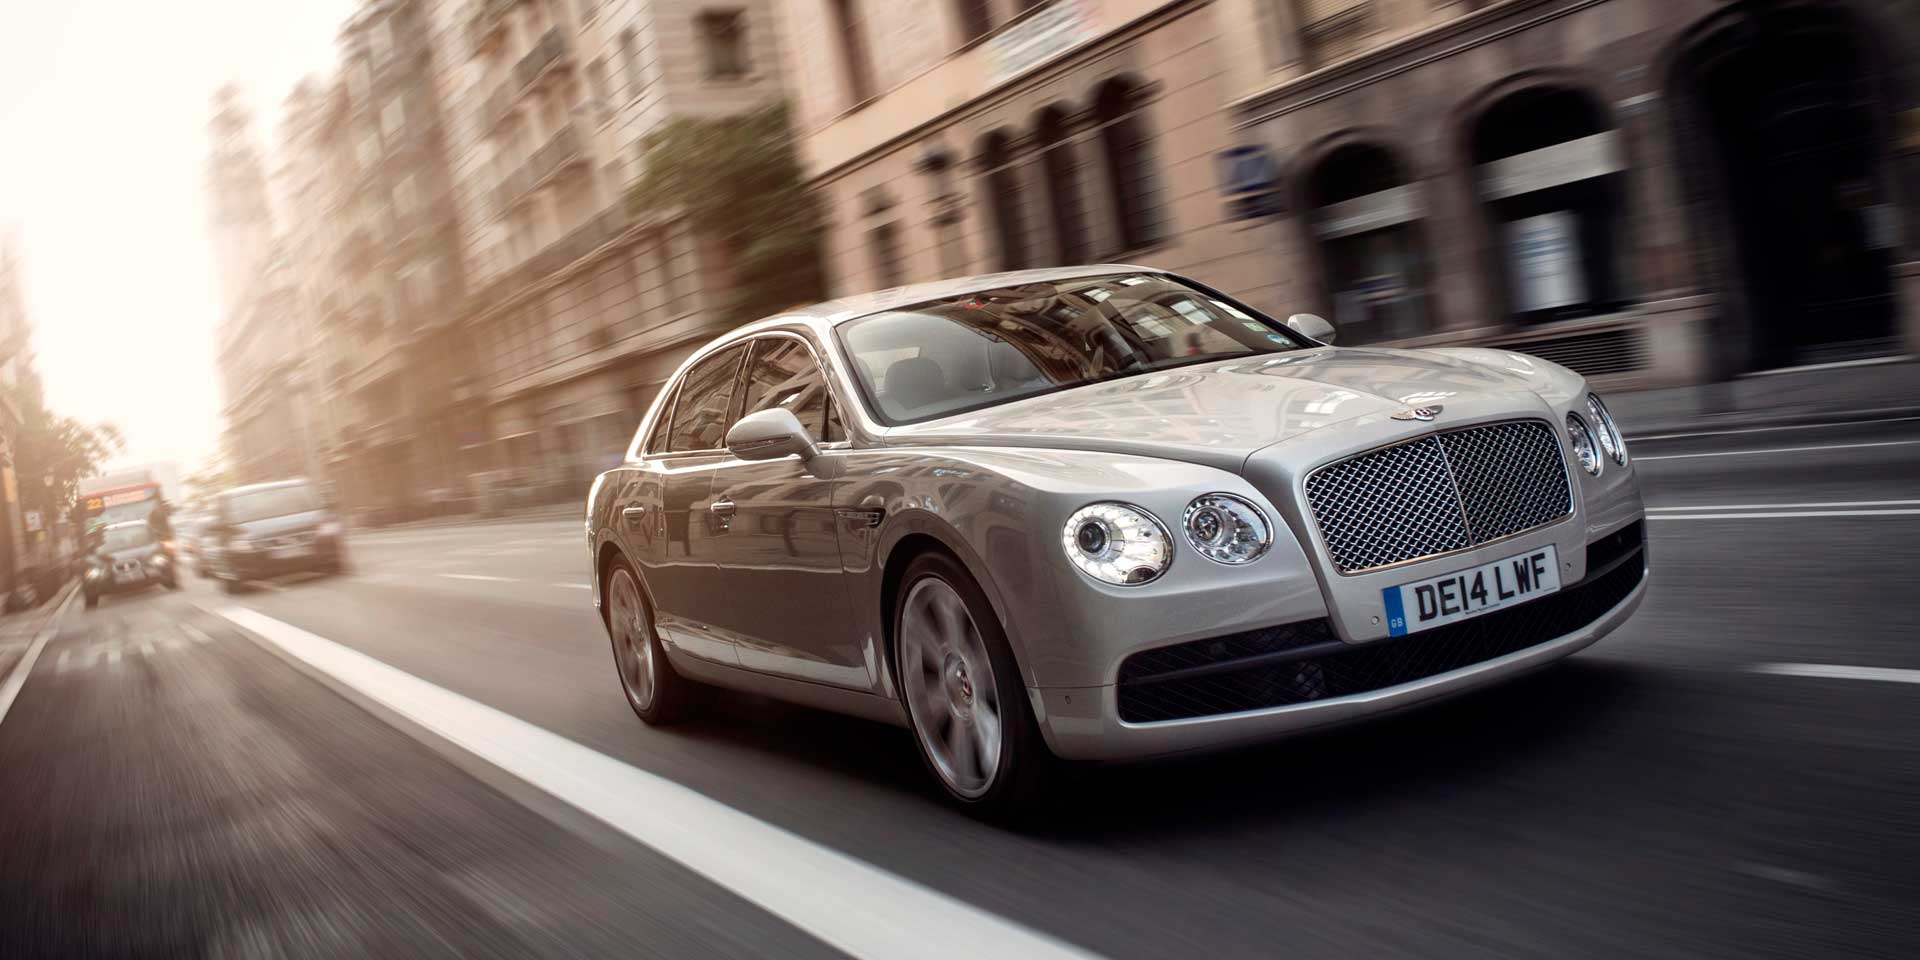 2019 - Bentley - Flying Spur - Vehicles on Display ...